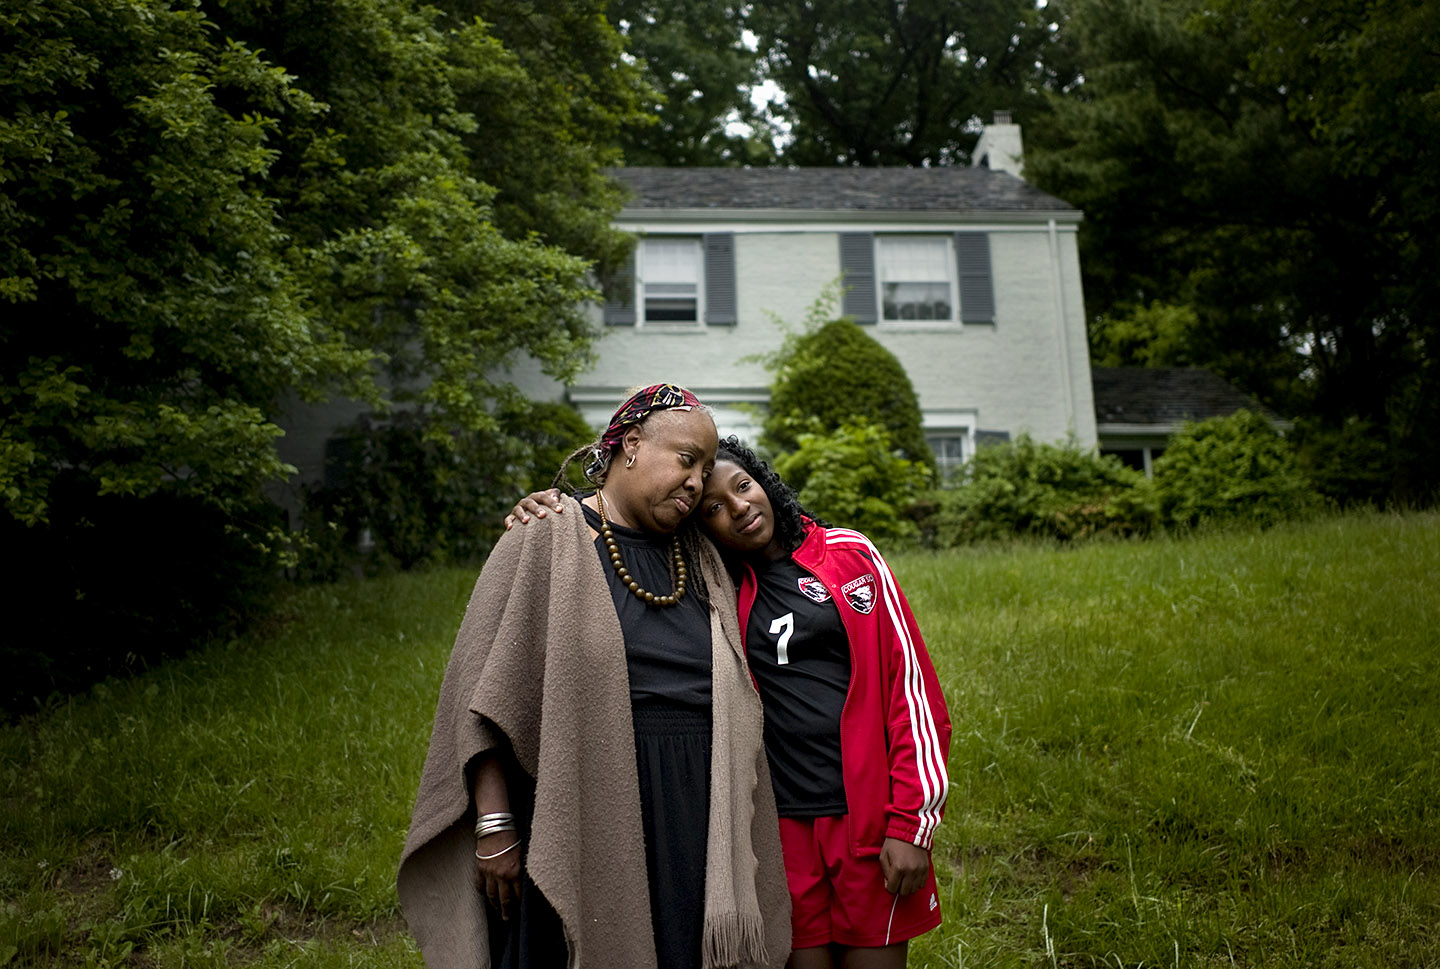 Linda and her daughter Samira are uninsured NJ residents.  Photographed for Catholic Health East